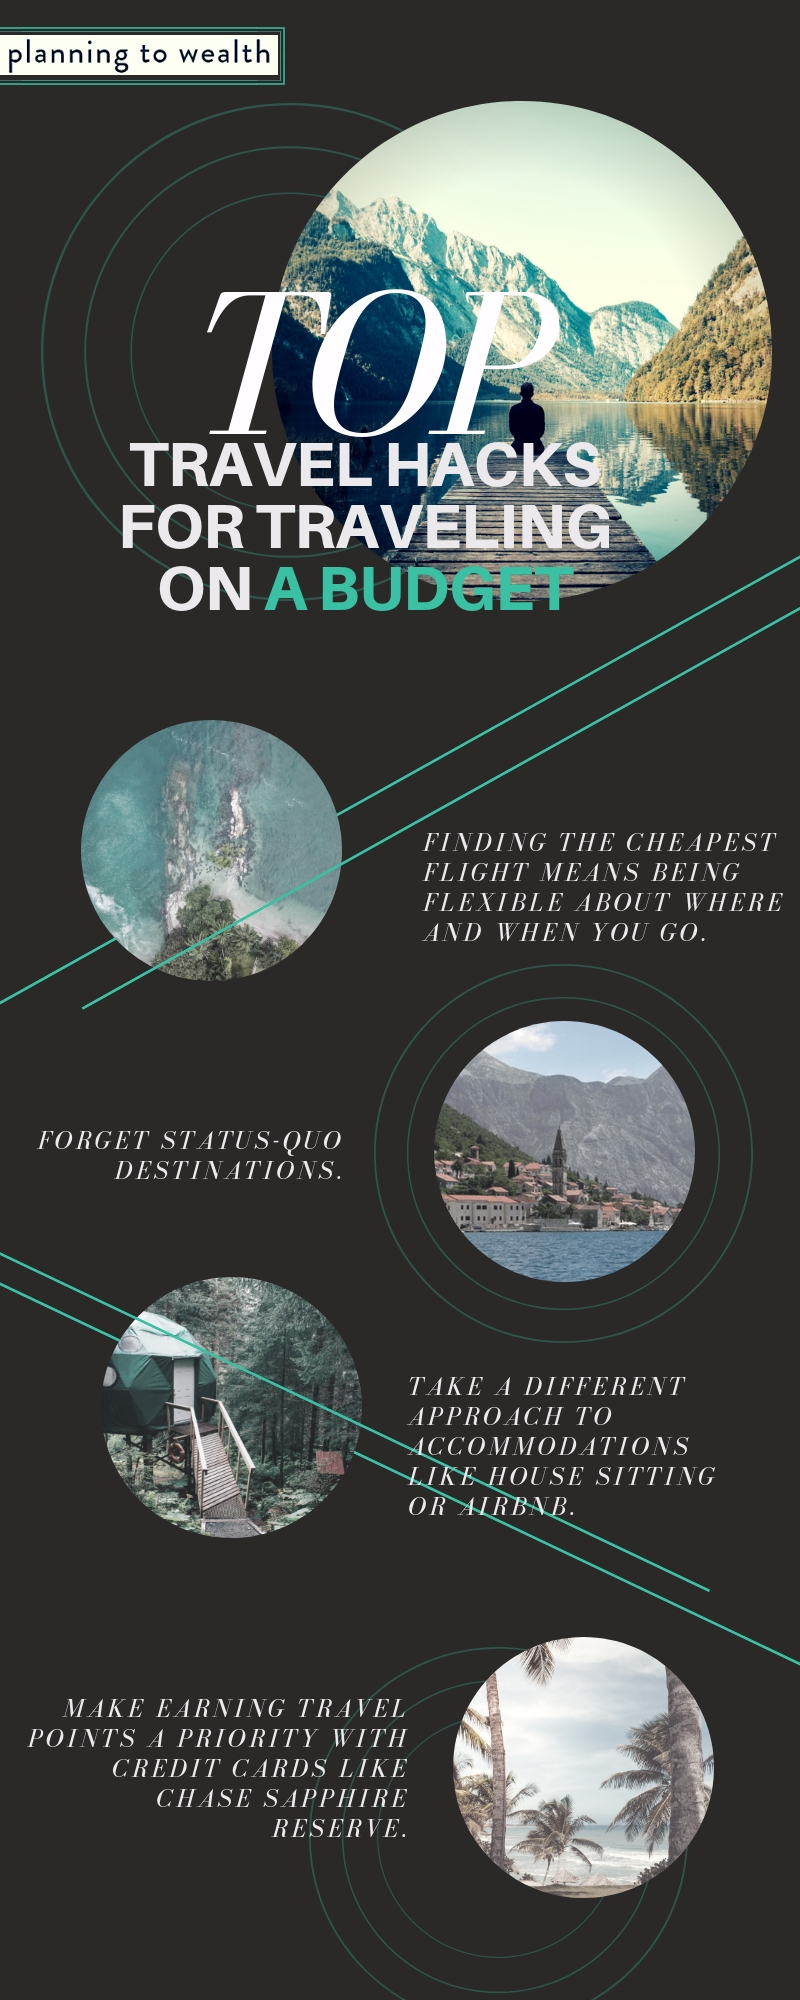 Travel hacks and strategies on a budget